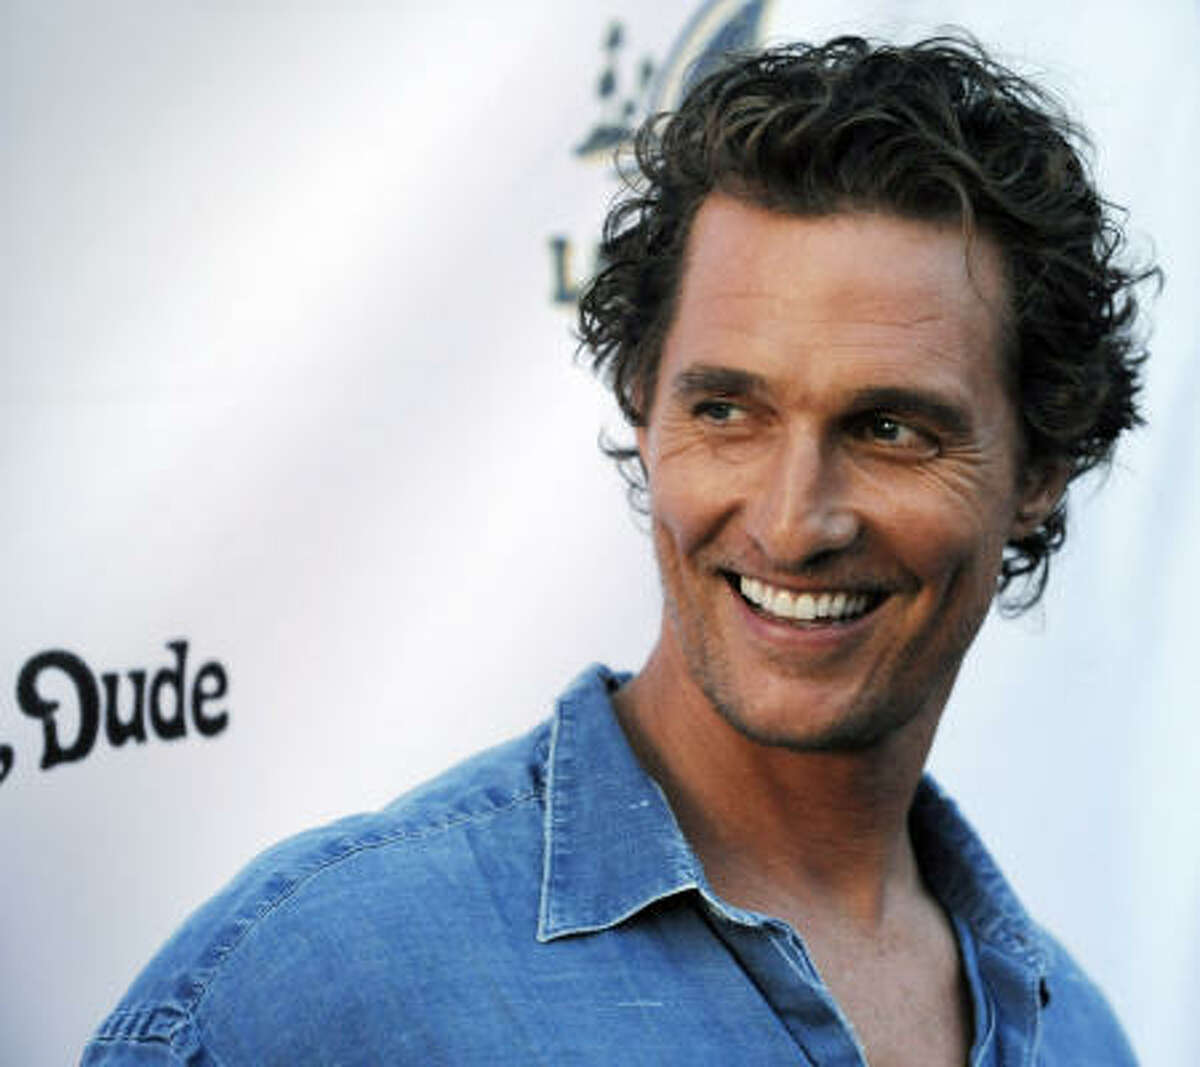 Matthew McConaughey isn't for everyone. Some love him. But some aren't on board with the Texas native. What do you think? Is this laid-back, southern surfer hot or not? Vote here.